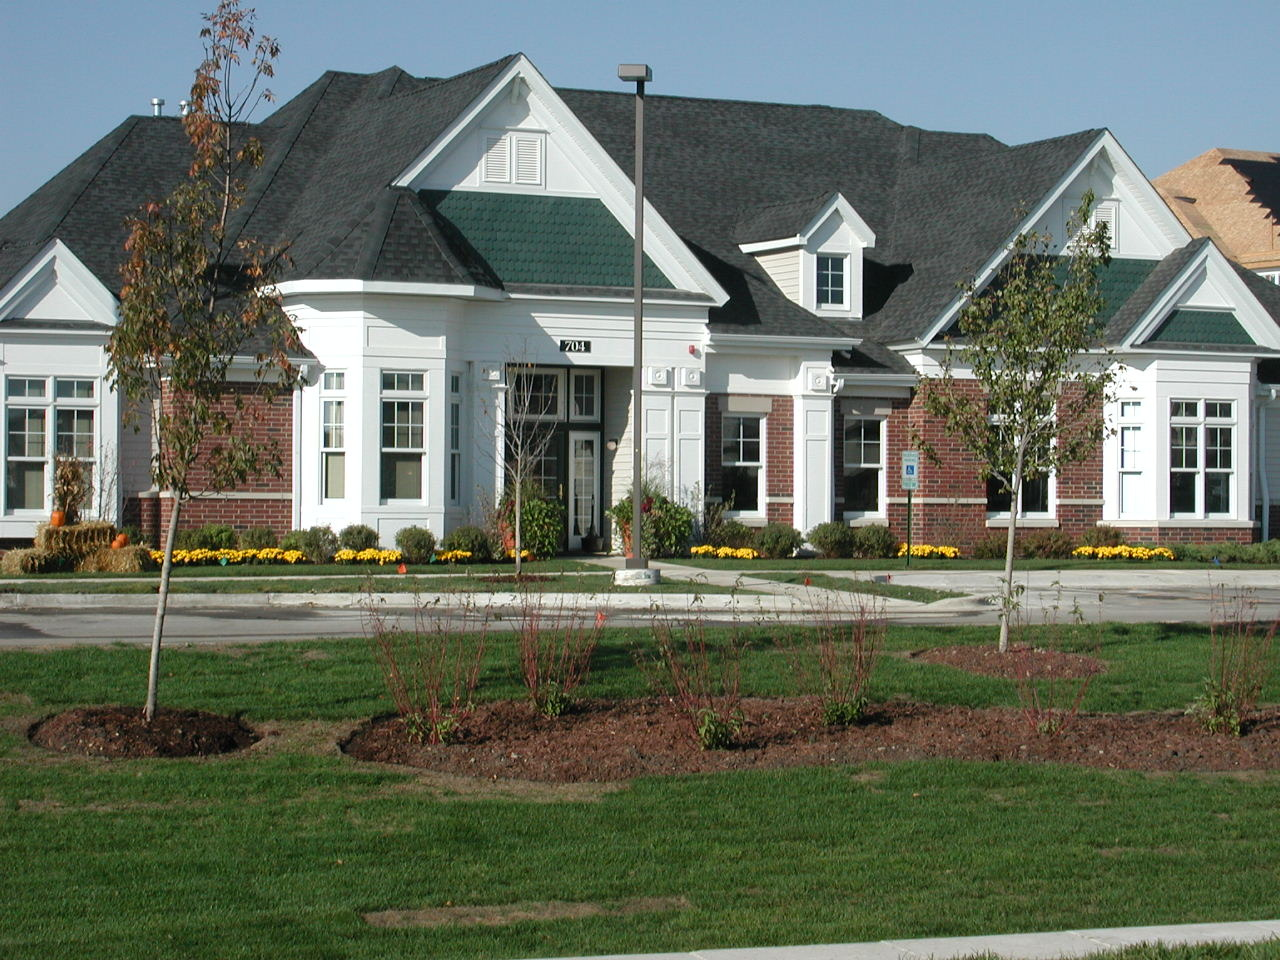 CBG builds Bristol Station Apartments, a 328 Market Rate Apartments in Naperville, IL - Image #1